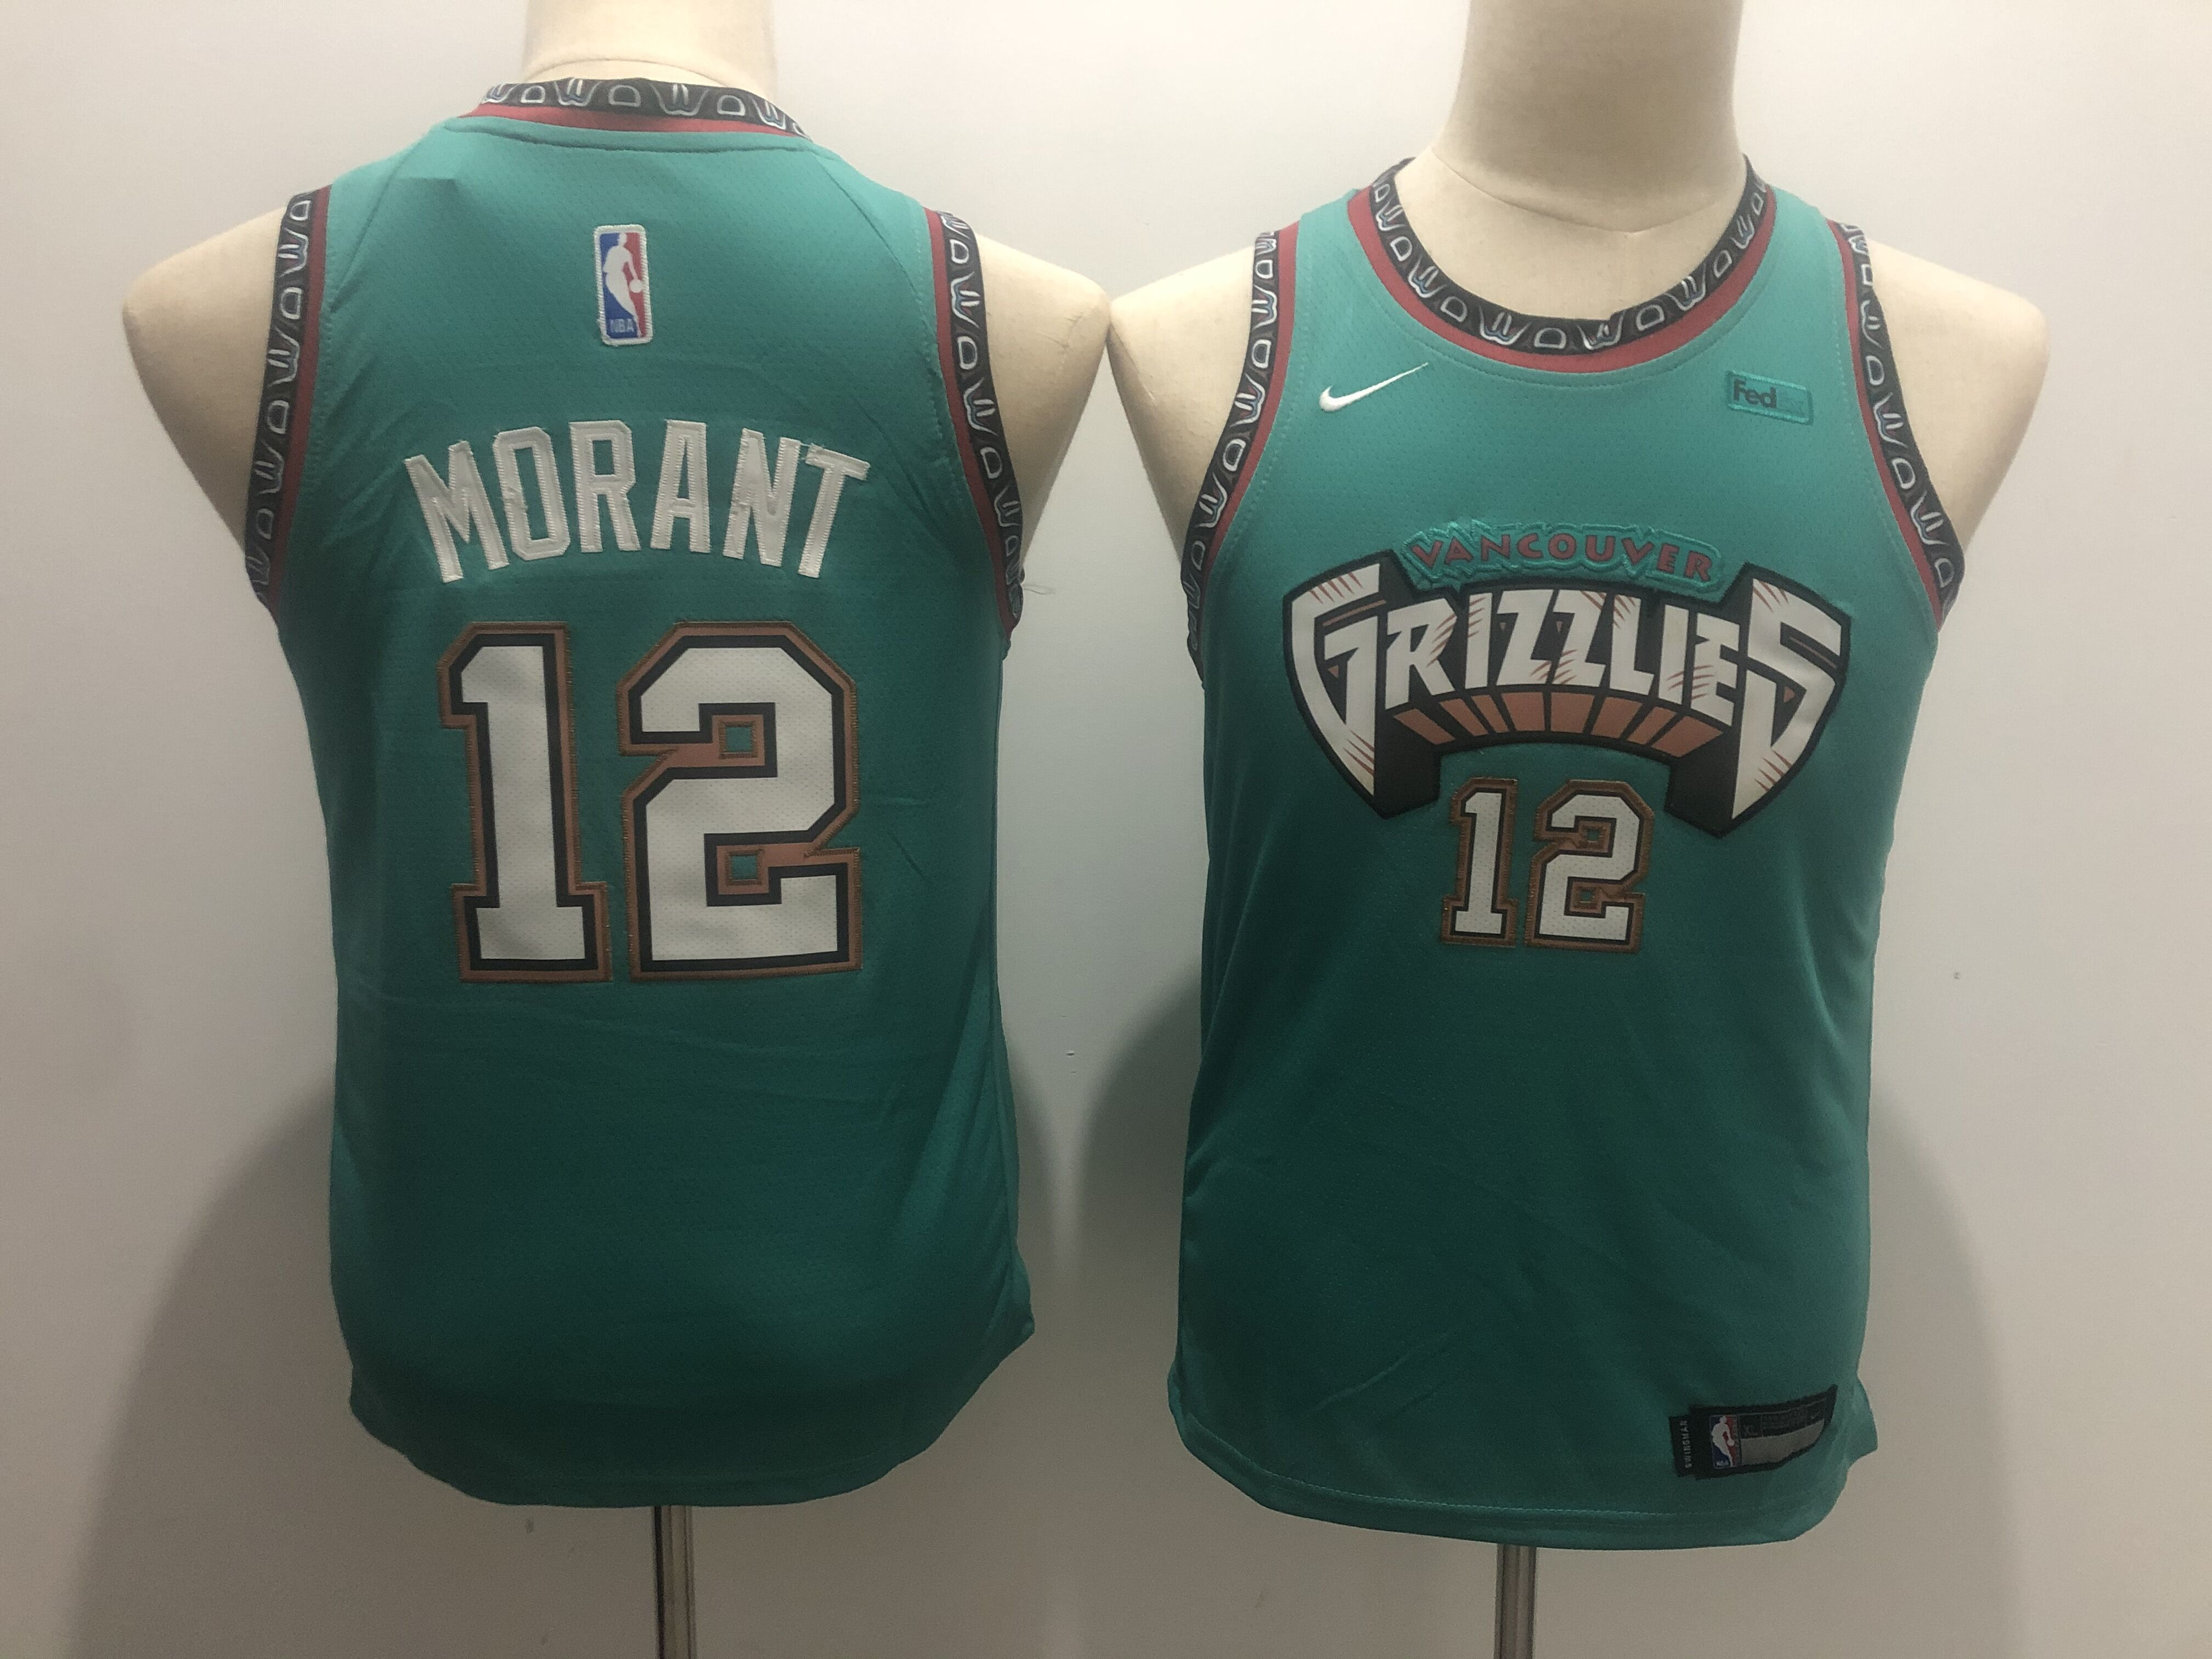 Youth Memphis Grizzlies 12 Morant green Nike NBA Jerseys